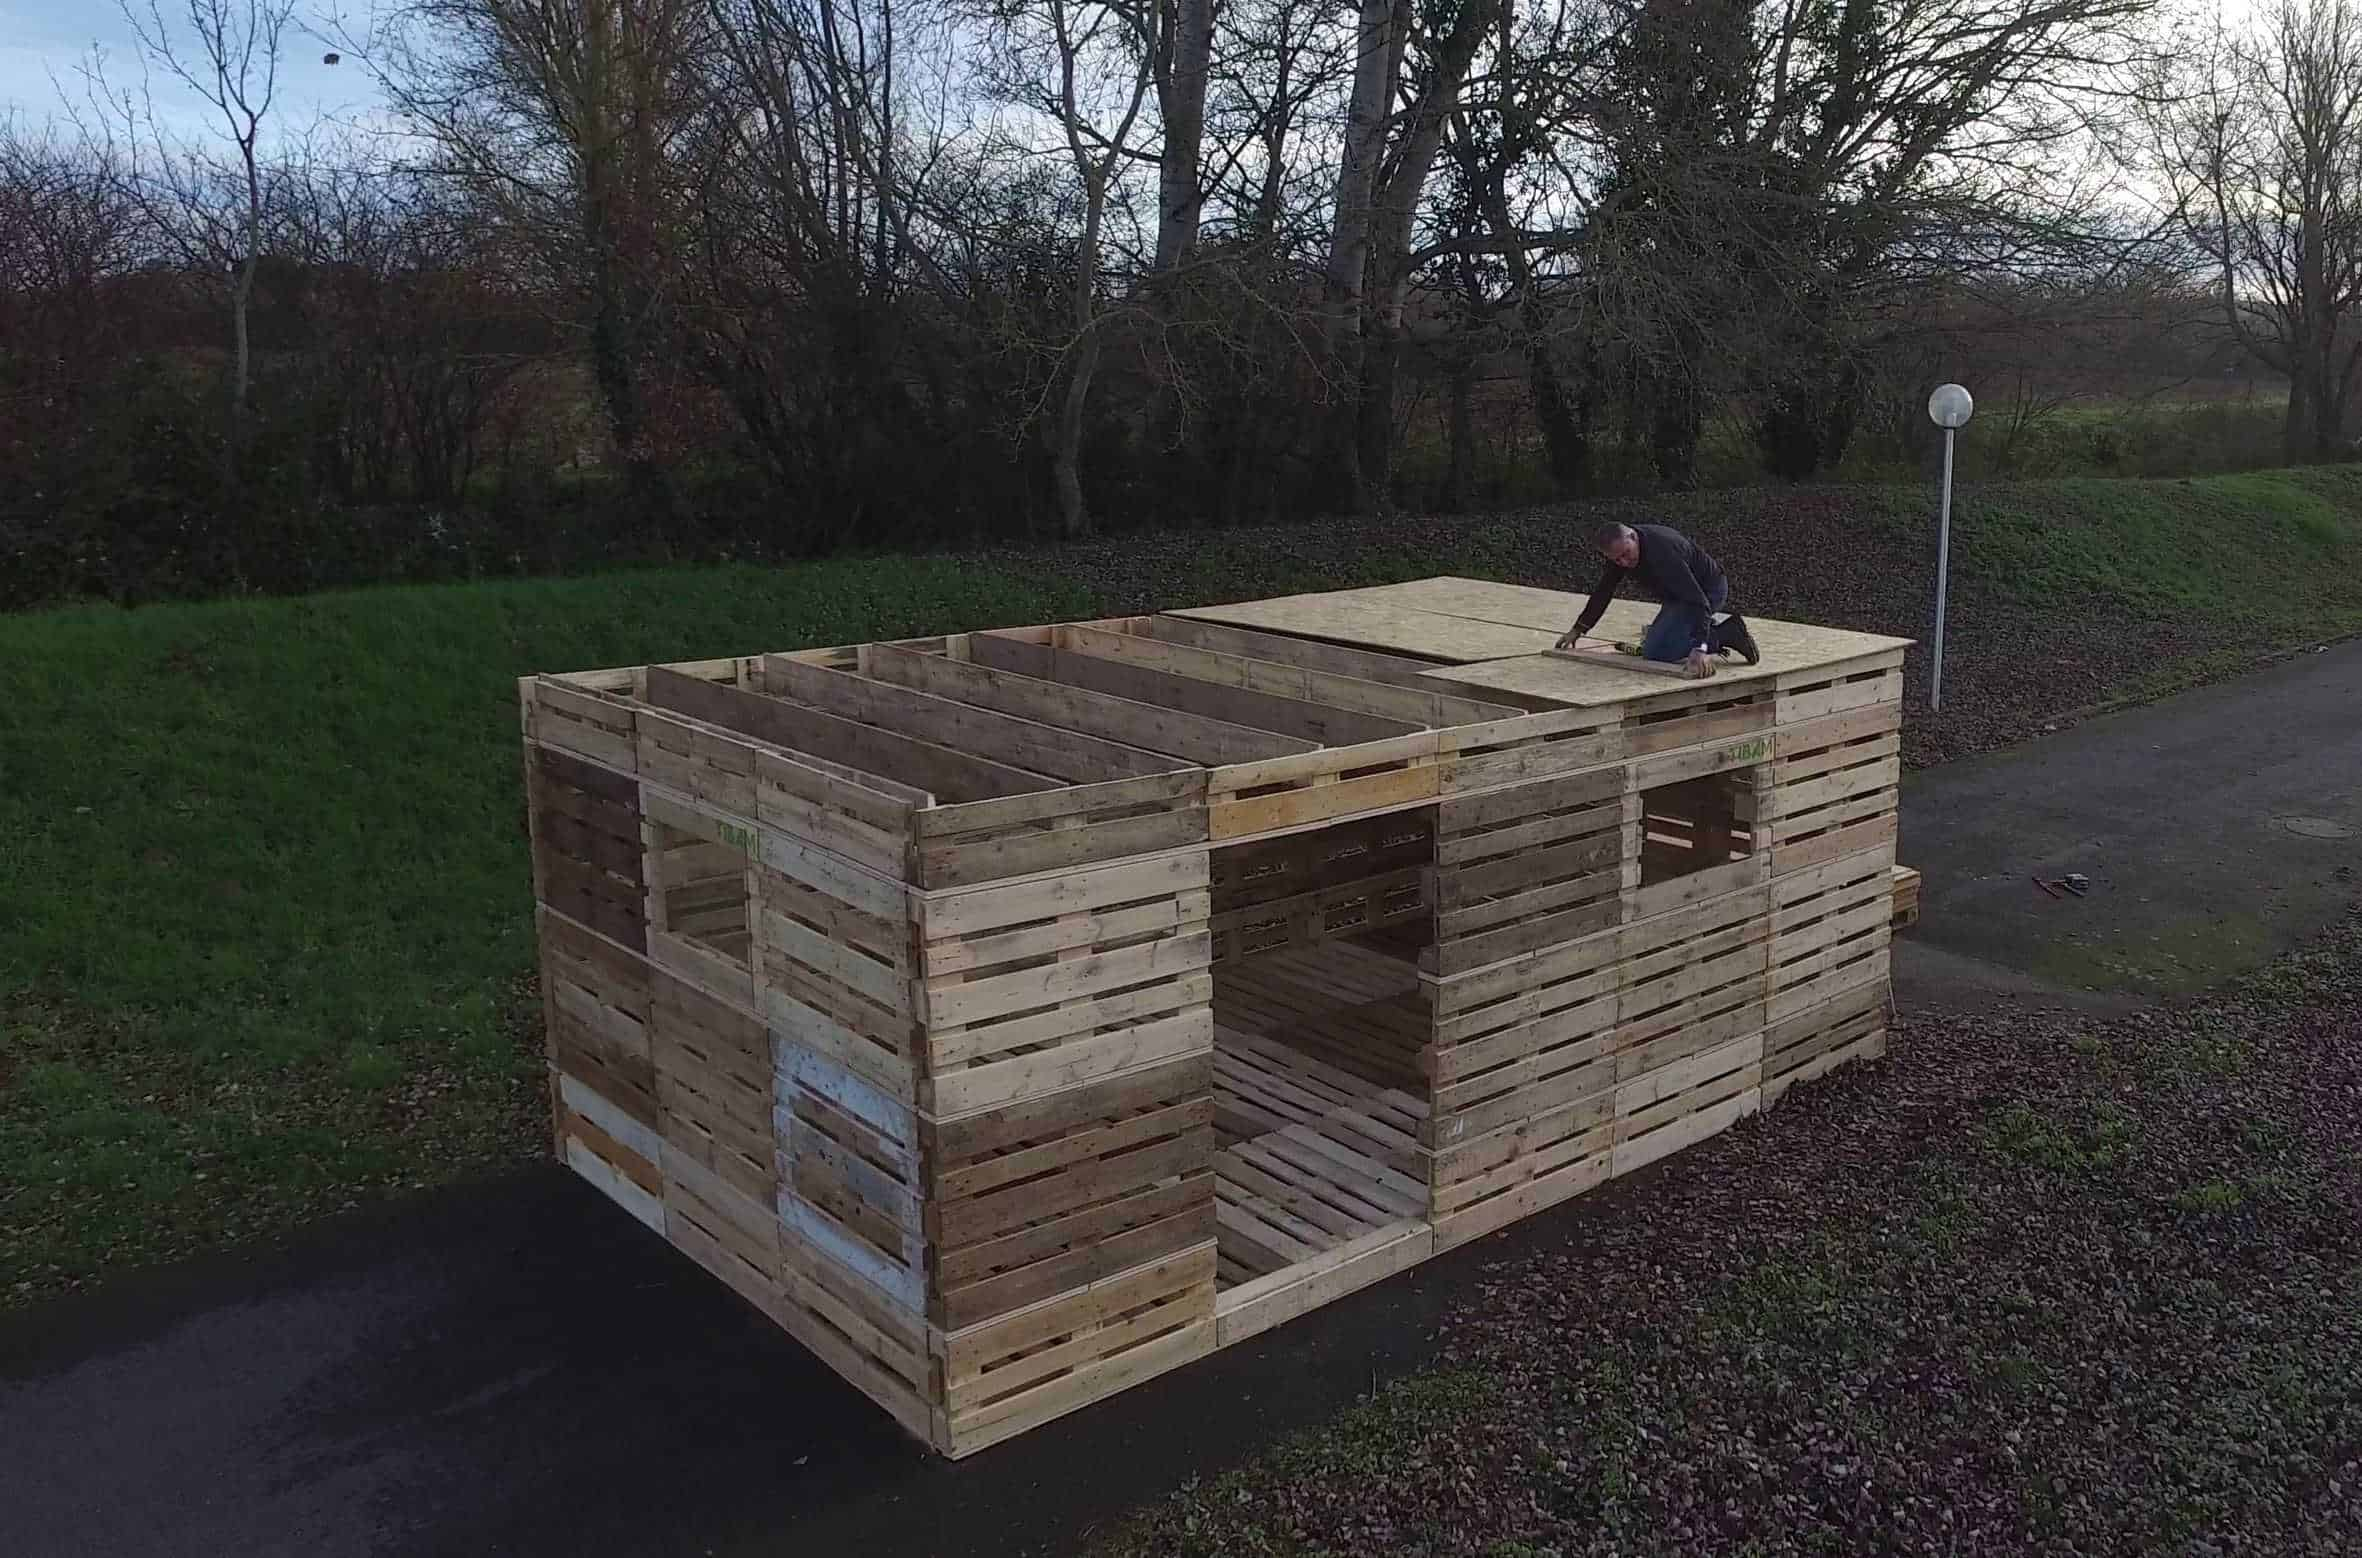 What If You Could Build A Shelter From Pallets In One Day